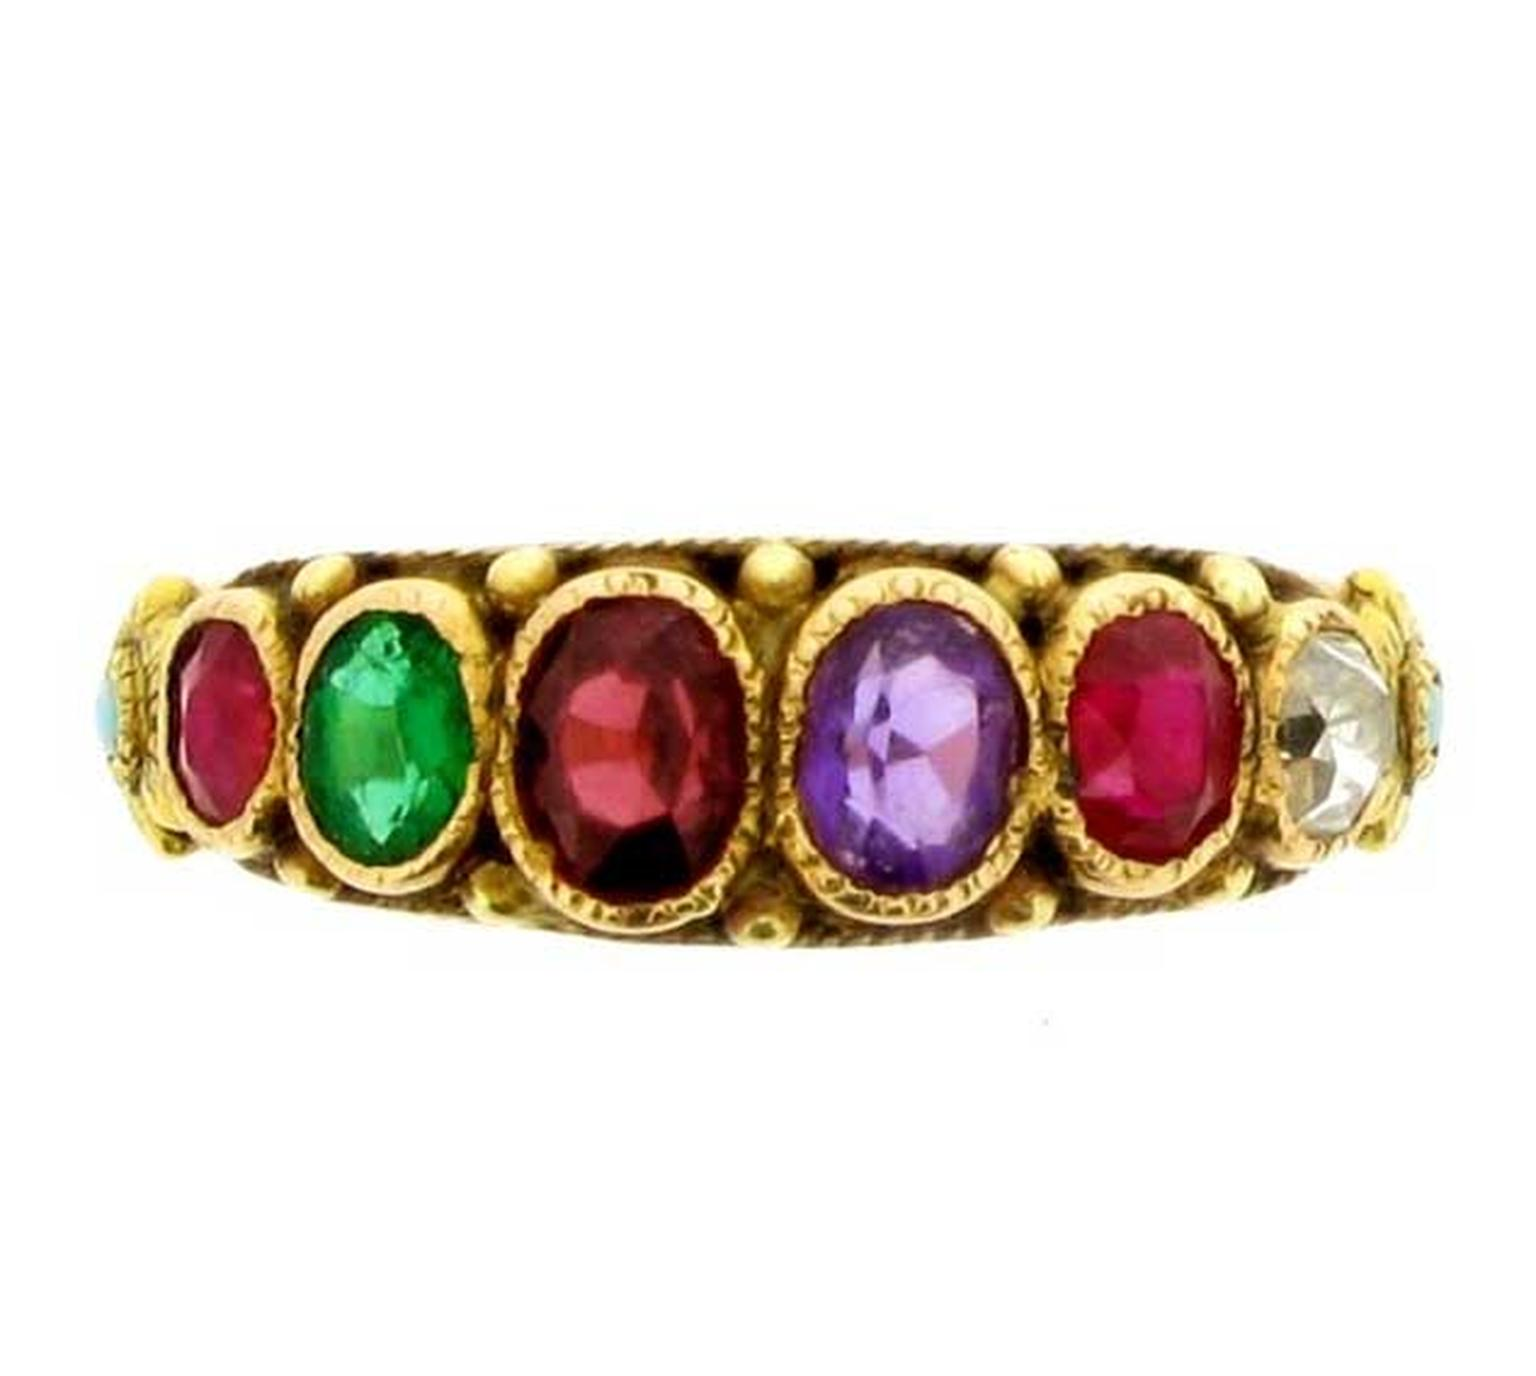 This antique Regard ring in yellow gold is set with a ruby, emerald, garnet, amethyst and diamond. Available from Berganza.